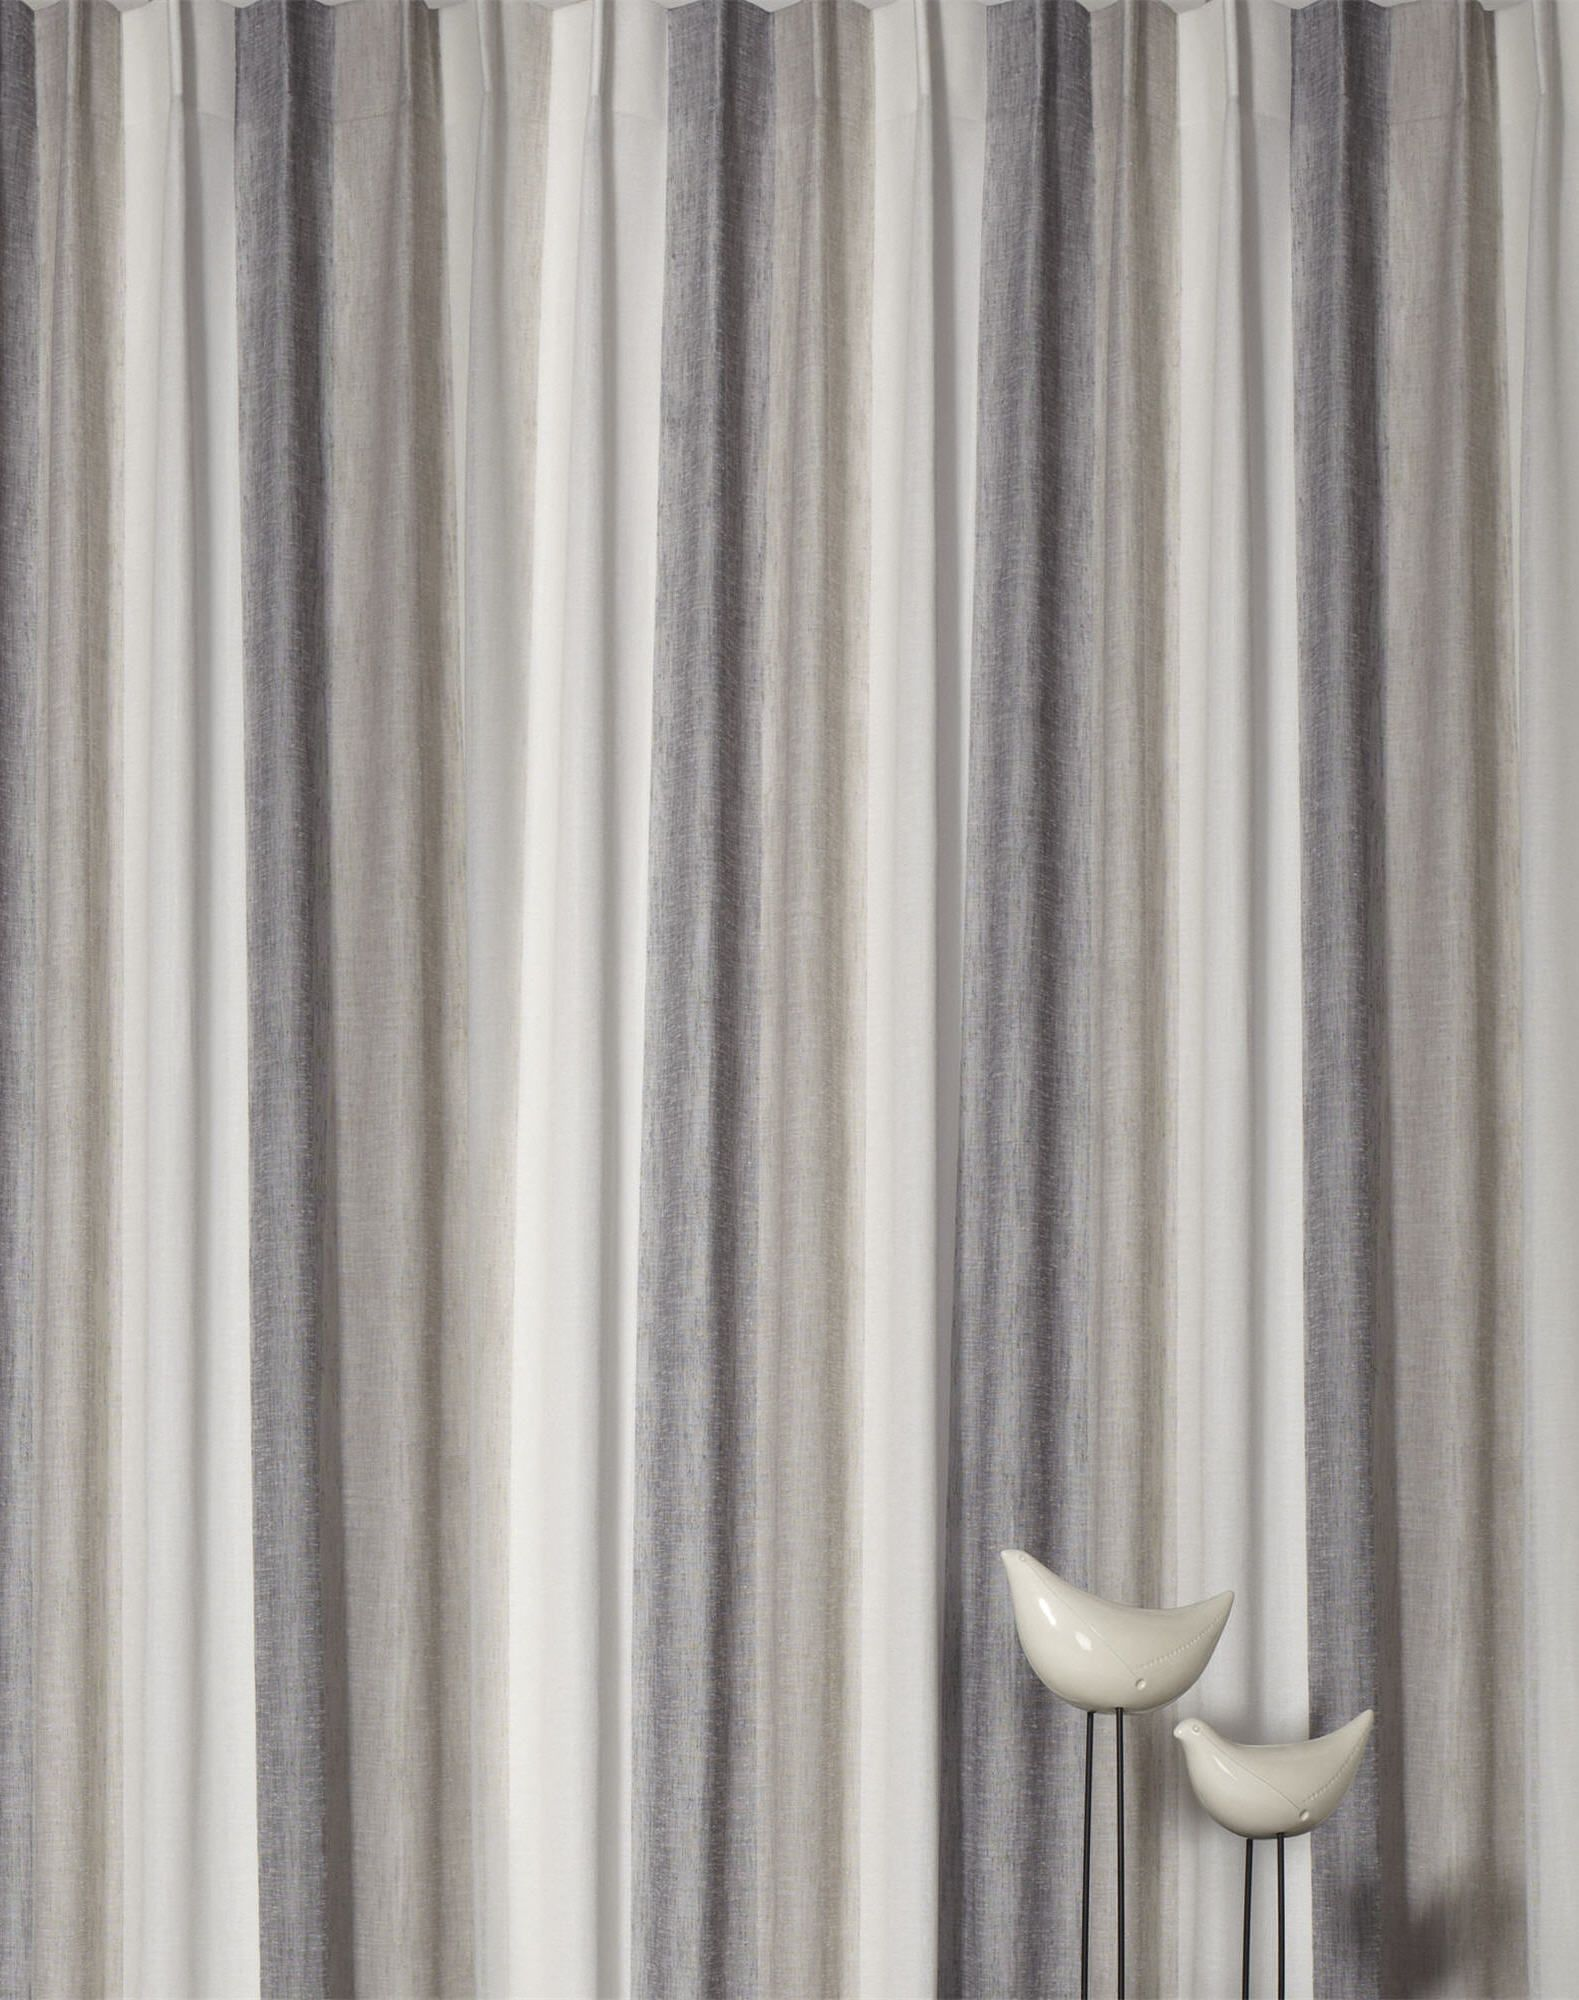 Flaxton Sheer Drapery Fabric By Charles Parsons Interiors Fabric